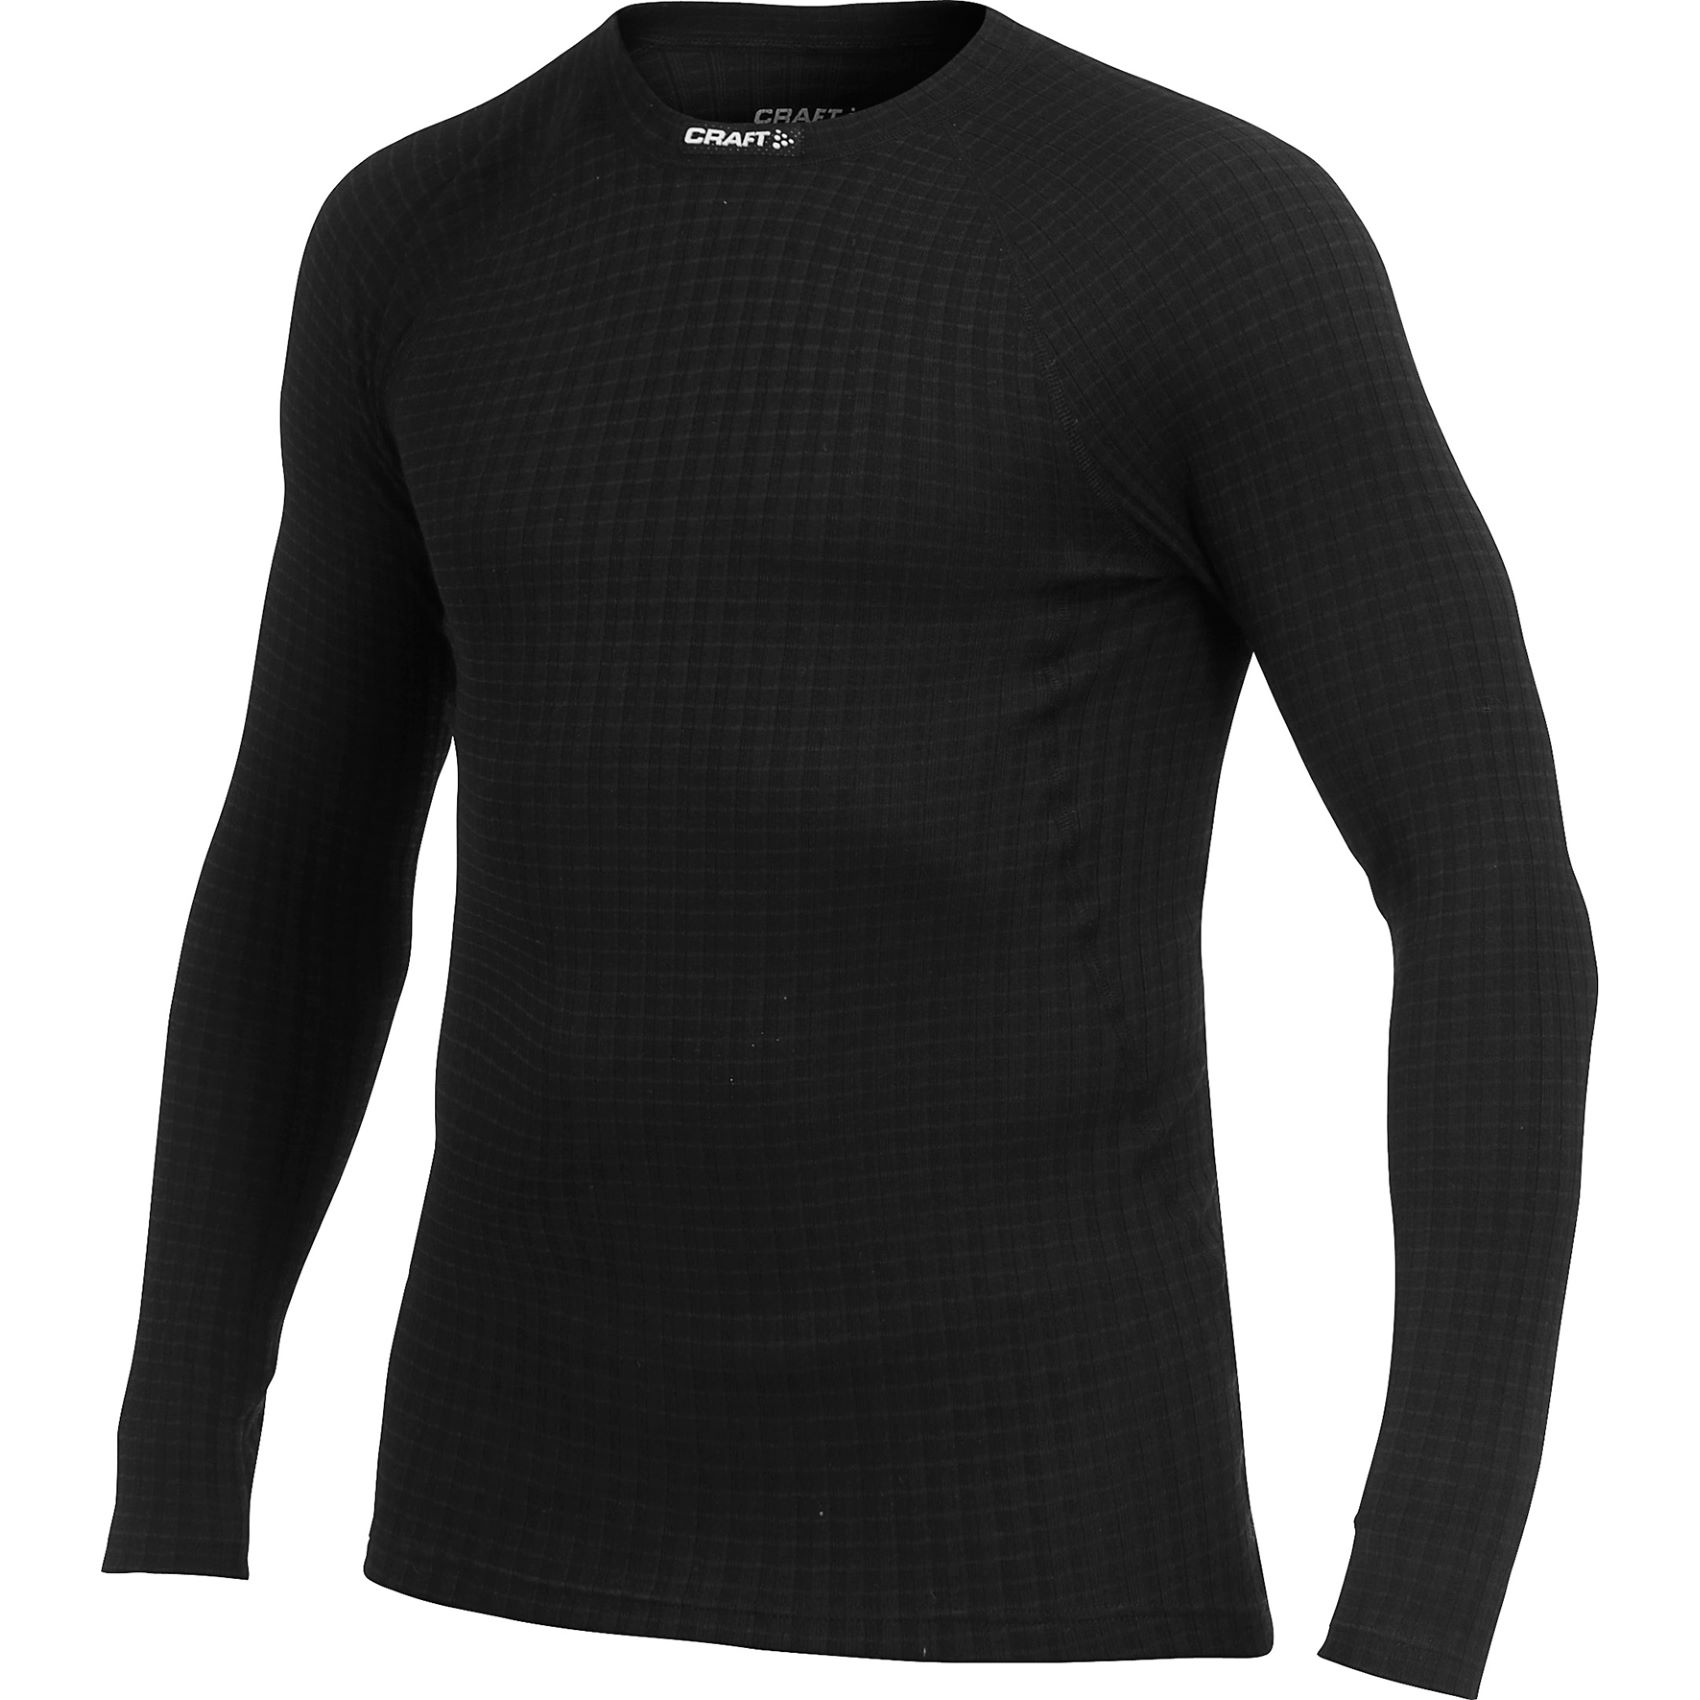 wiggle italia craft warm wool crew neck base layer